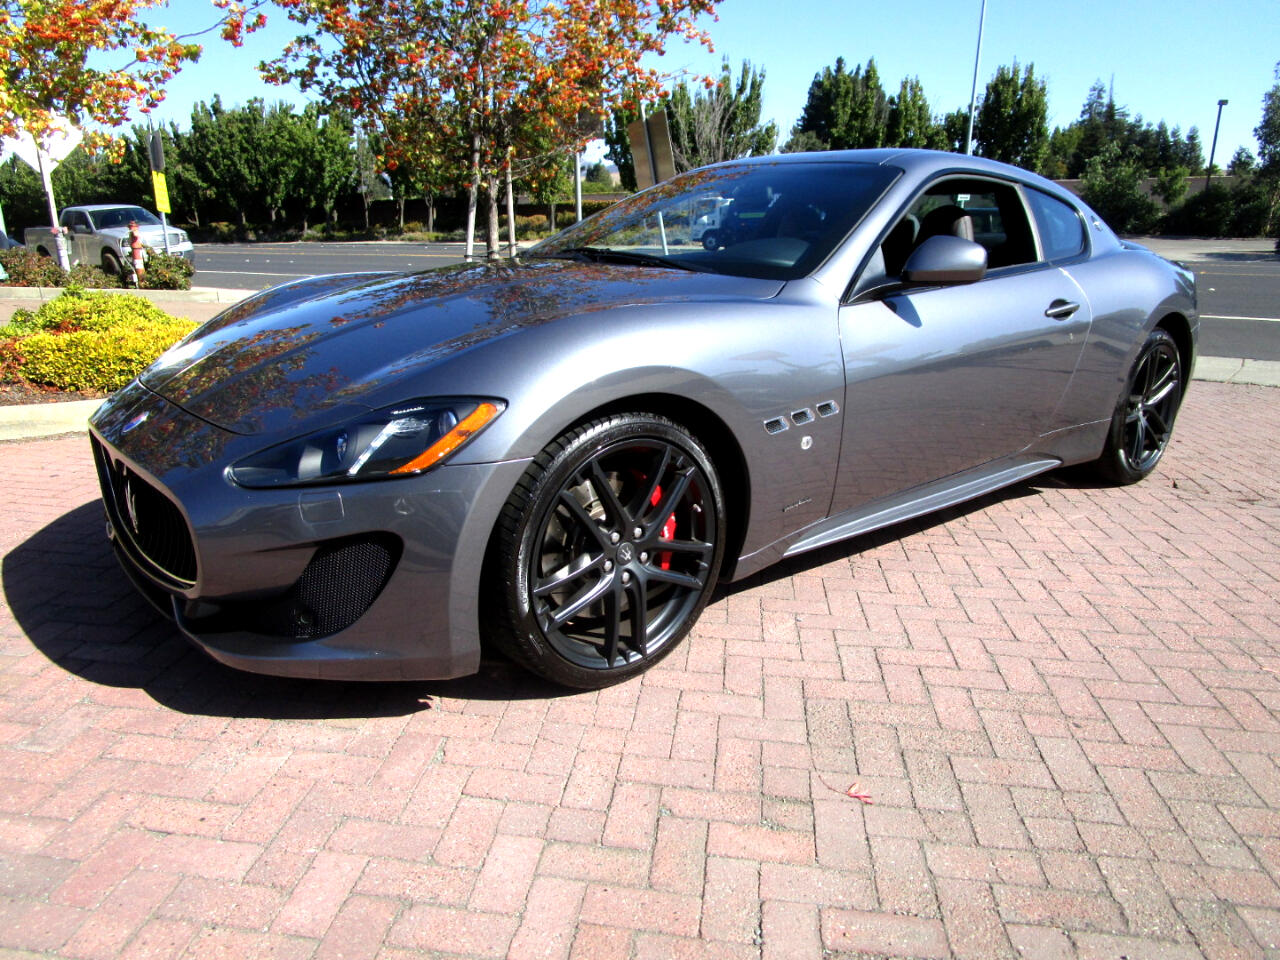 2016 Maserati GranTurismo 2654 MILES**4.7 LITER V8 454HP*LOADED-LIKE NEW**